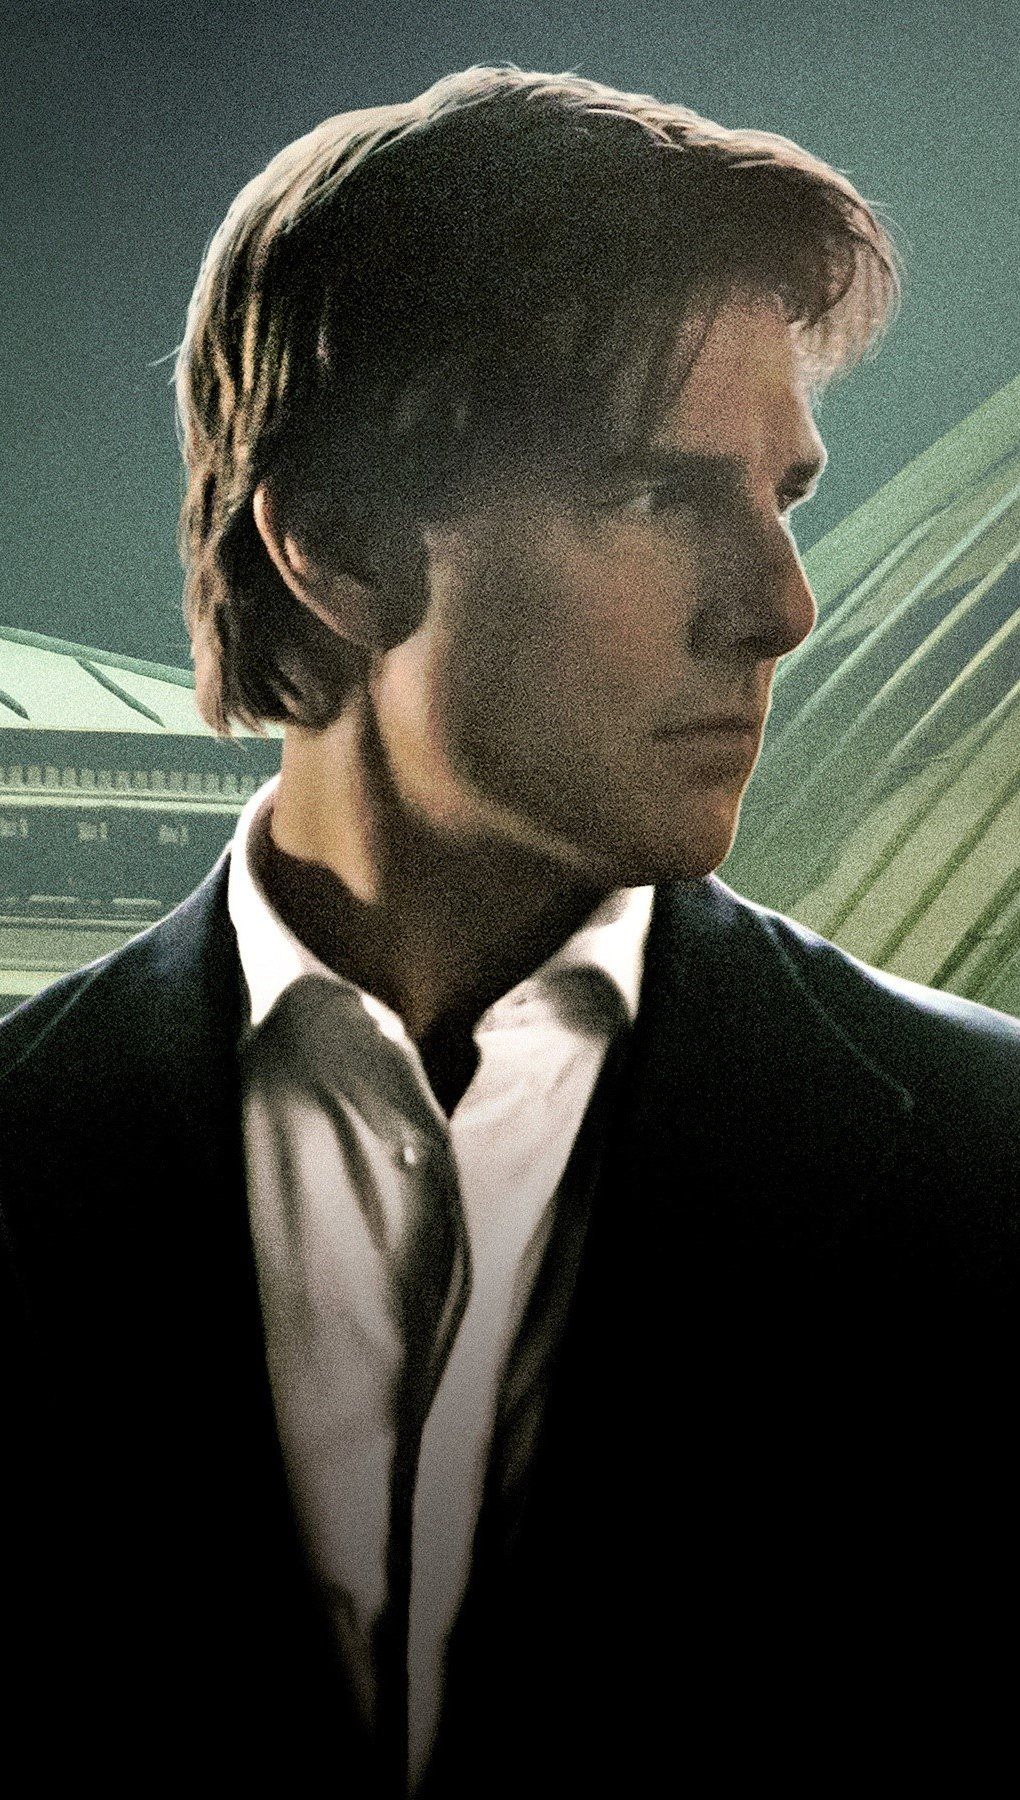 Wallpaper Tom Cruise in Mission Impossible Vertical